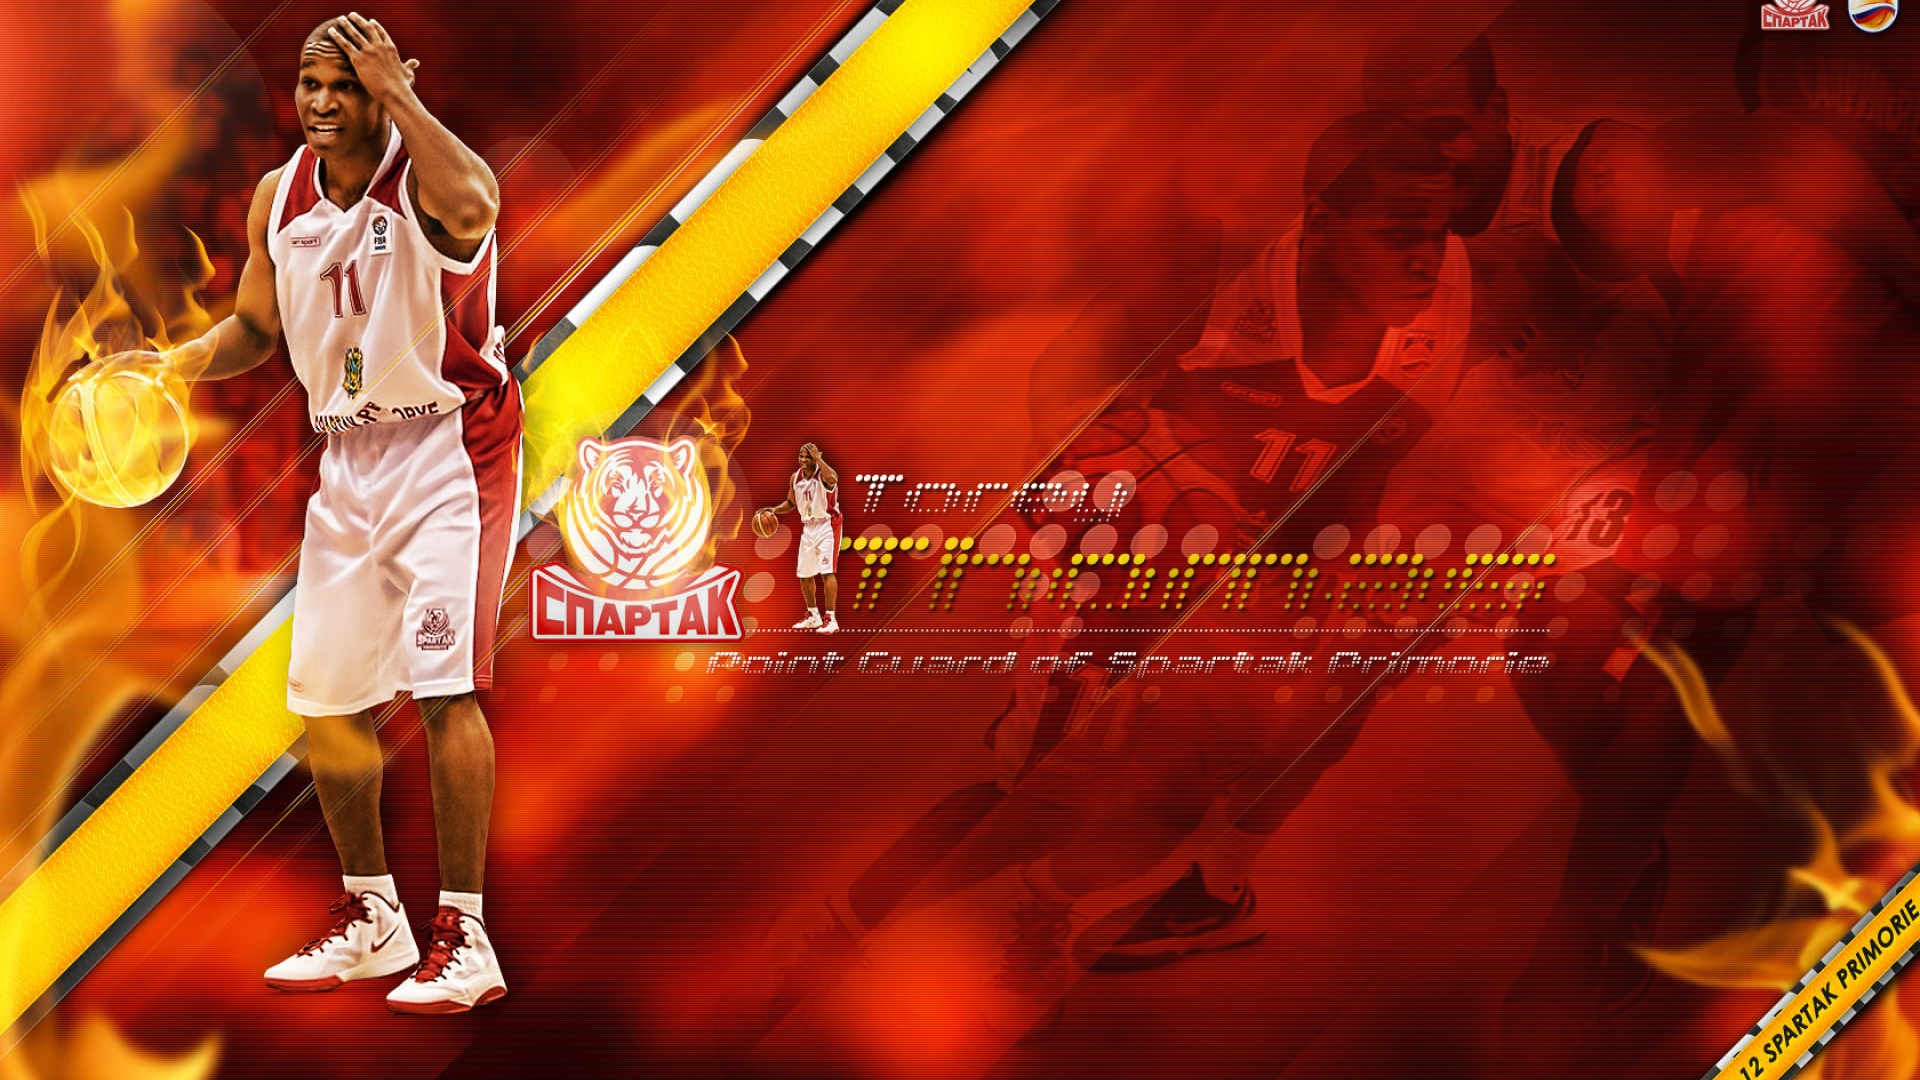 Torey Thomas Spartak Primorye NBA wallpaper